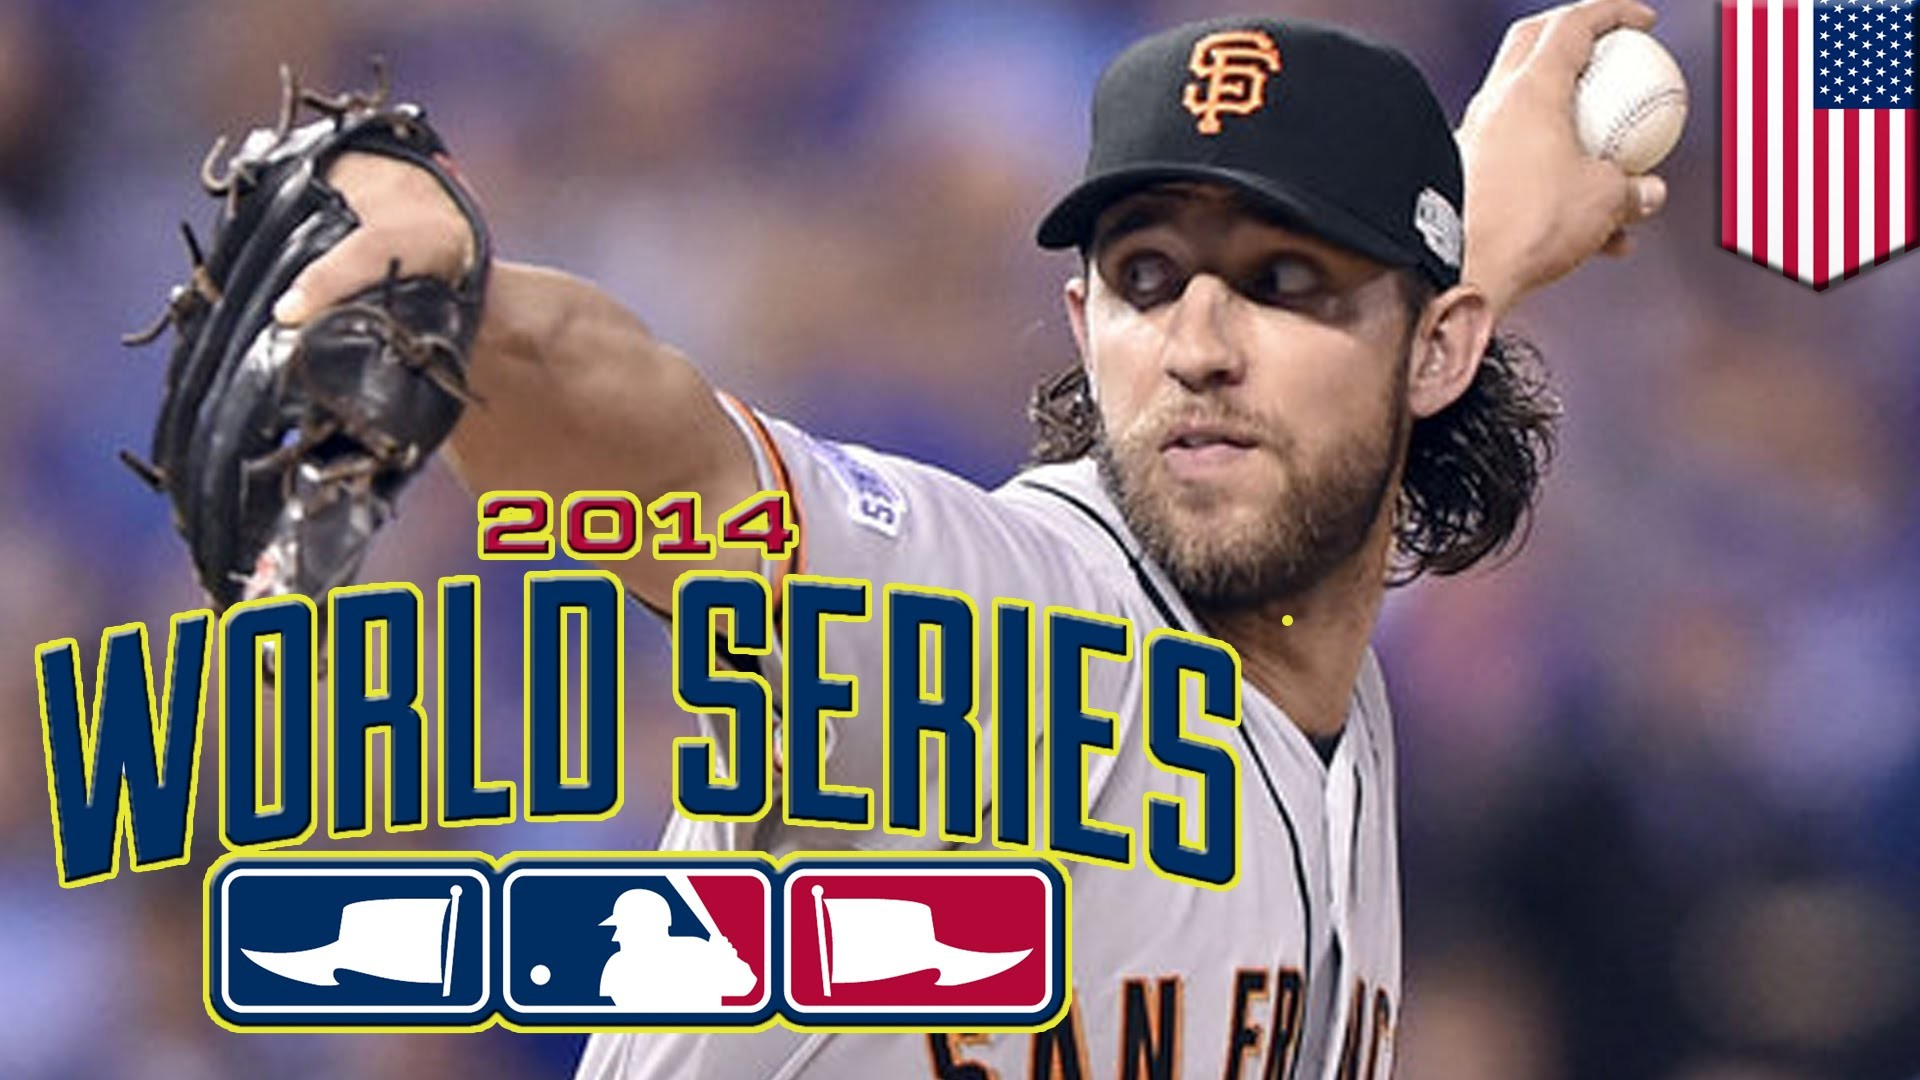 Giants World Series 2014 champs: MVP Bumgarner destroys Royals again in  Game 7 – YouTube